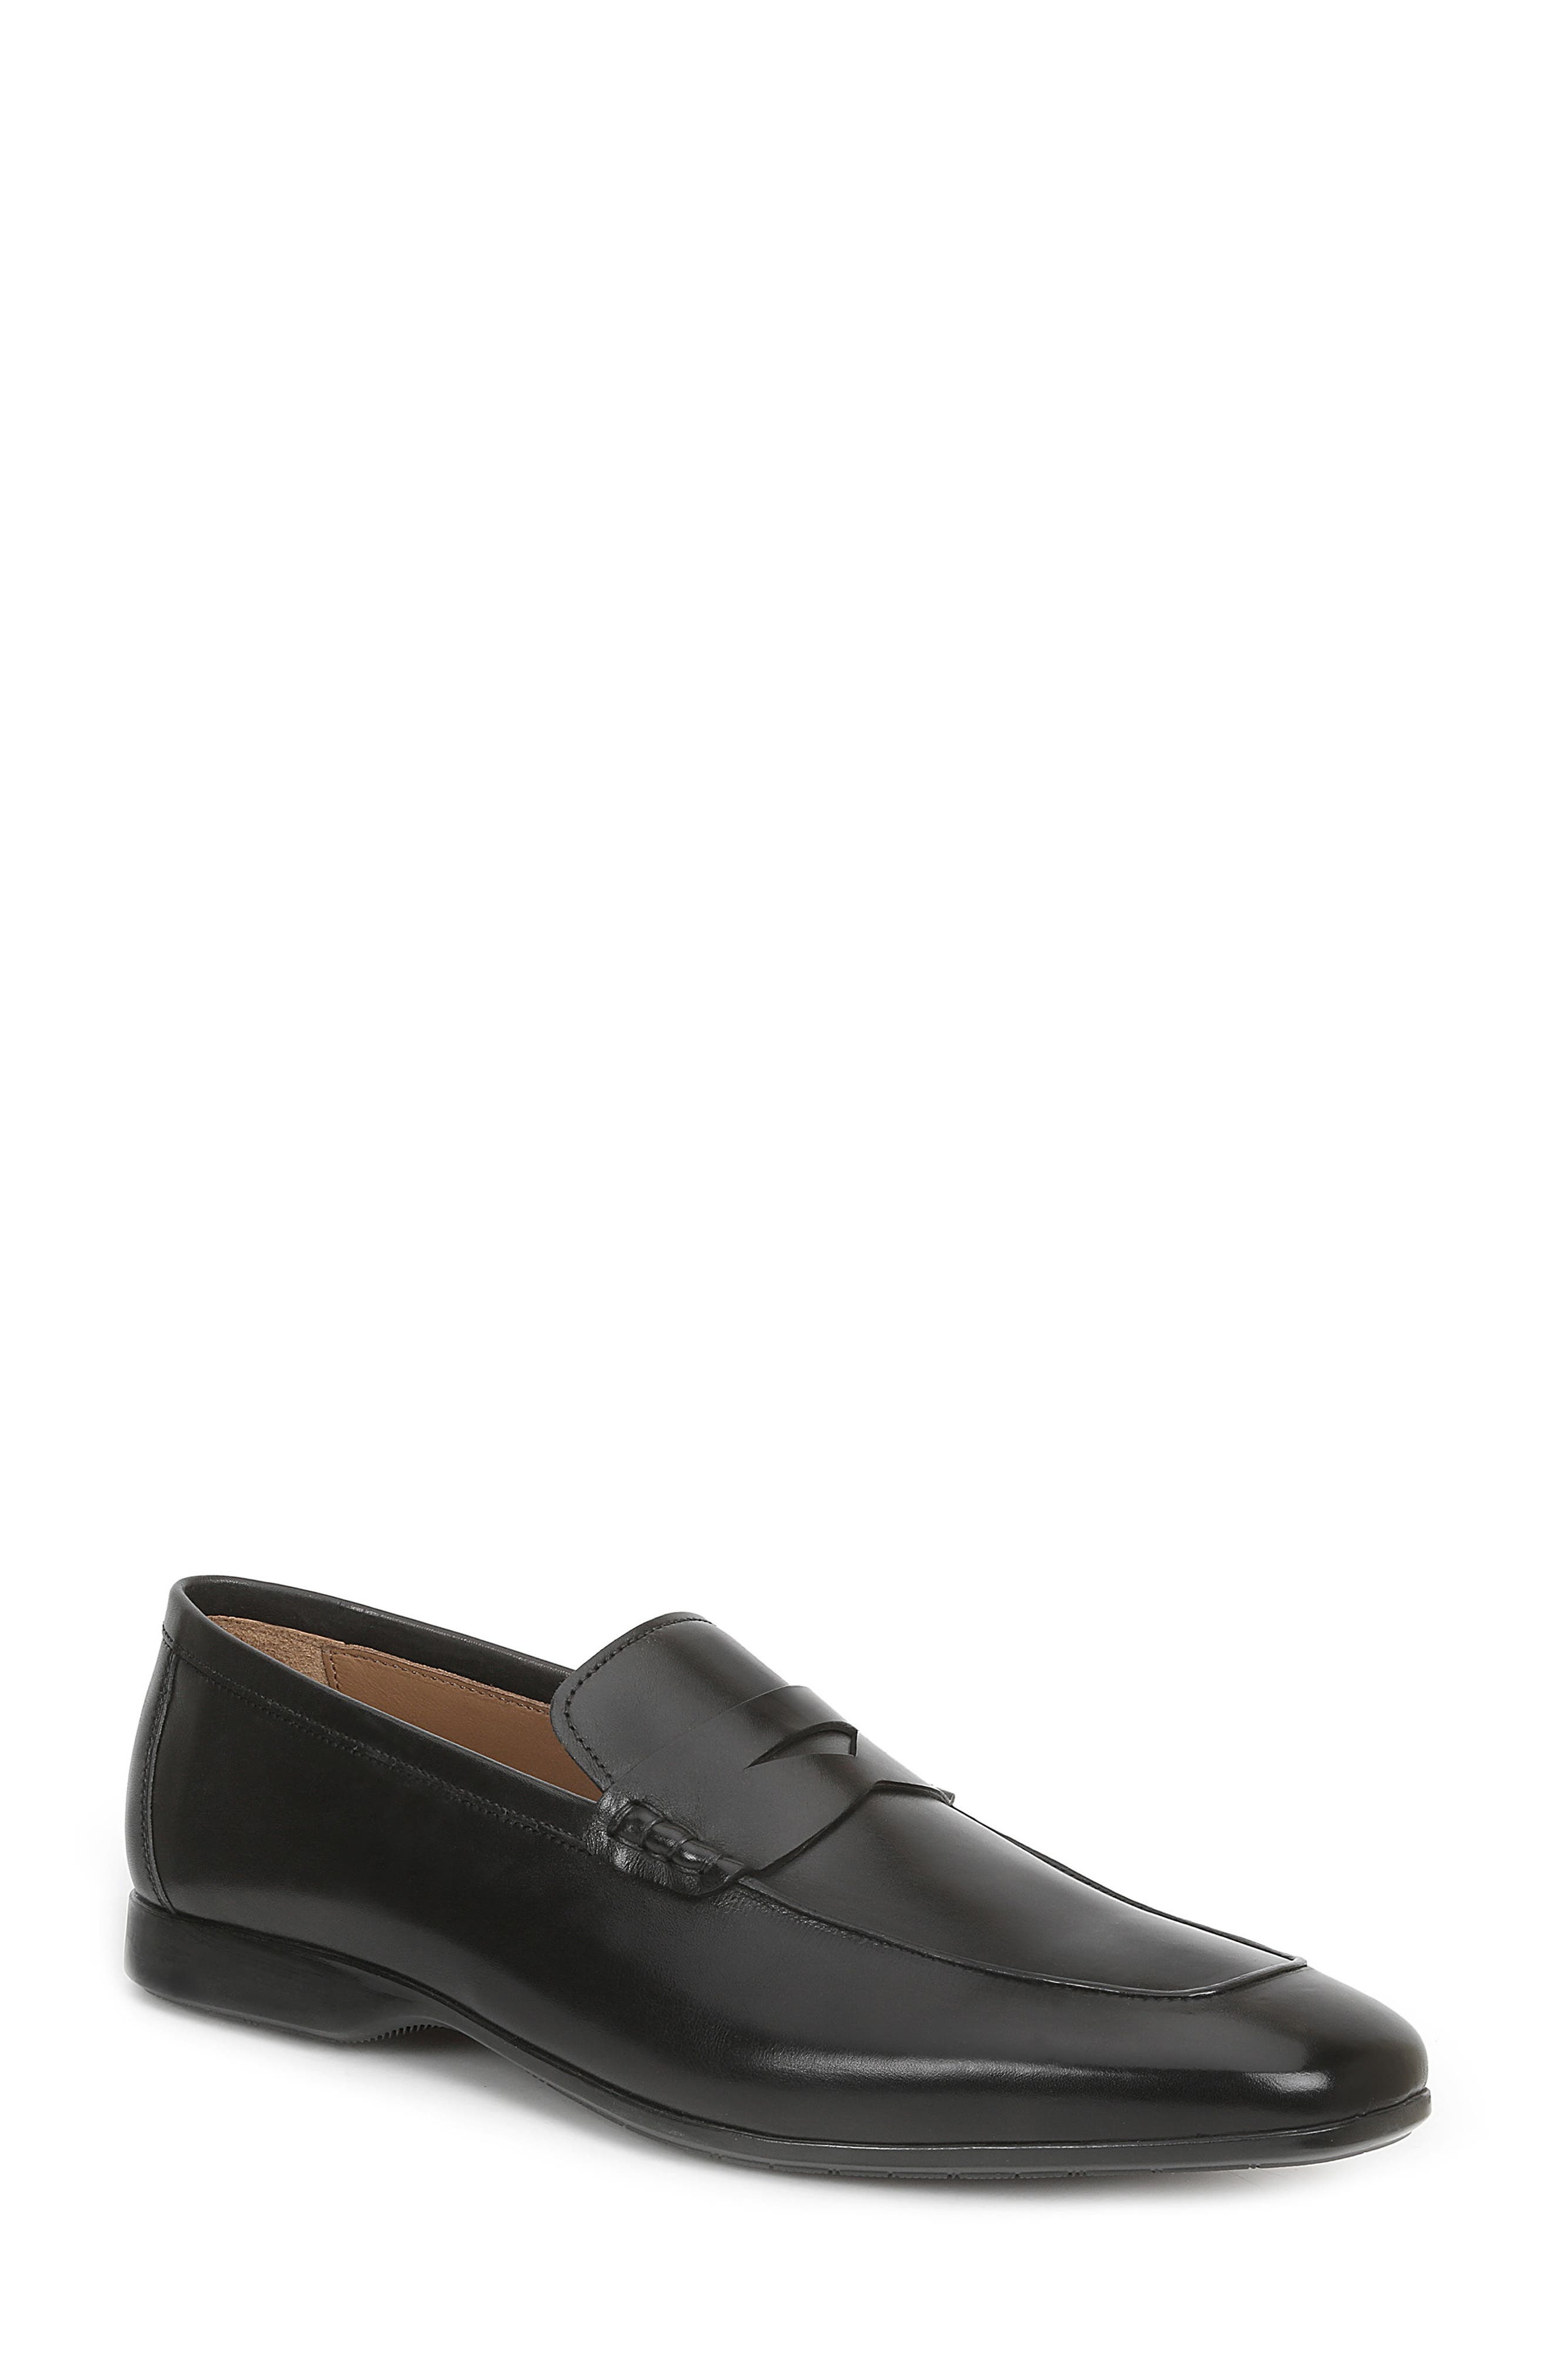 Margot Penny Loafer,                             Main thumbnail 1, color,                             BLACK